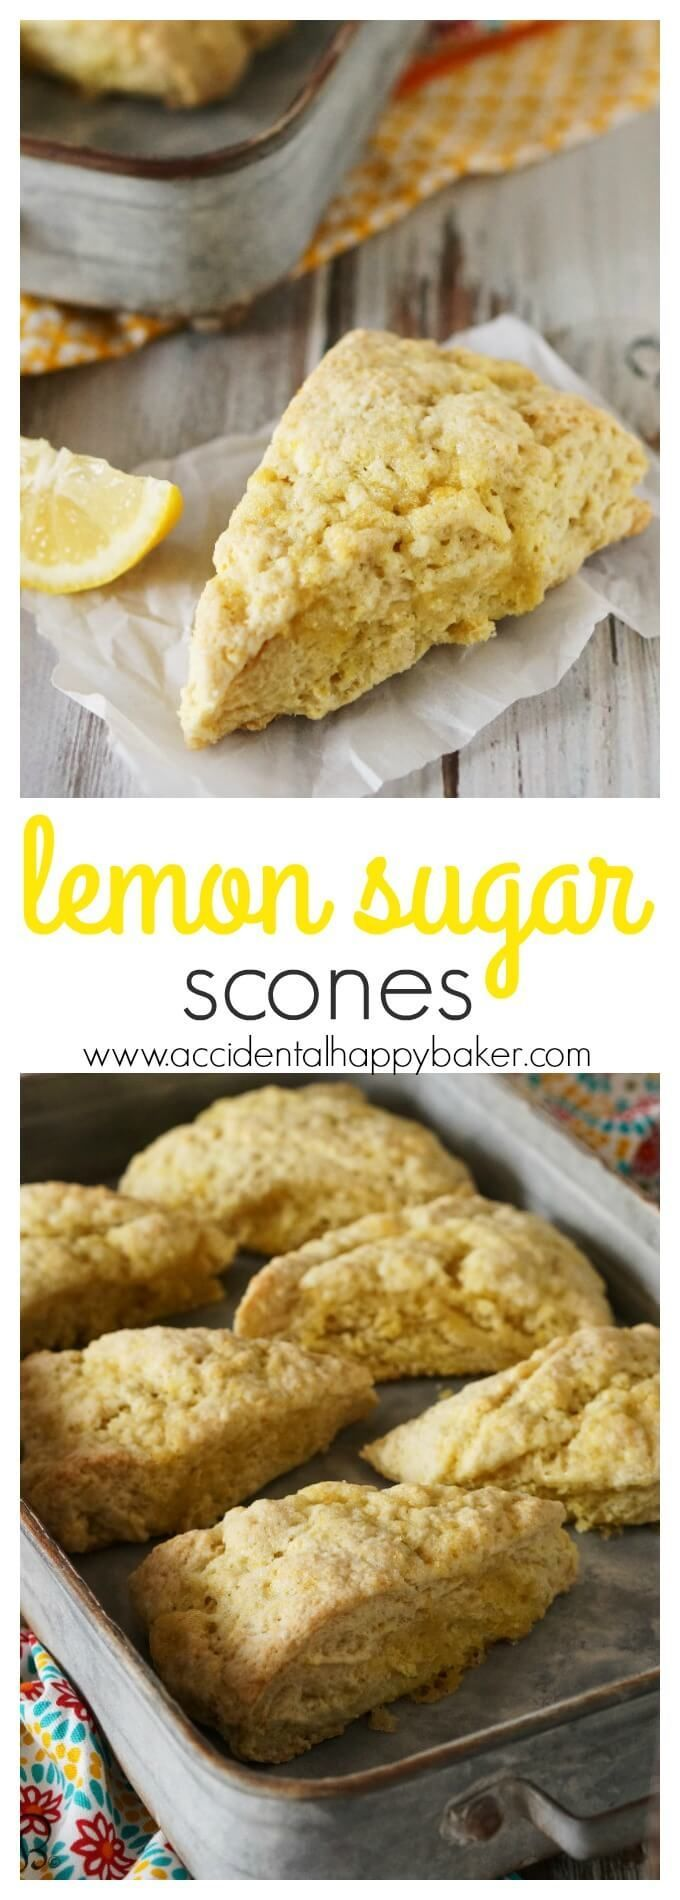 Lemon sugar scones are light and tender, with a delicate and natural lemon flavor. Perfect for nibbling alongside your favorite cup of tea. Recipe on http://www.accidentalhappybaker.com @AHBamy